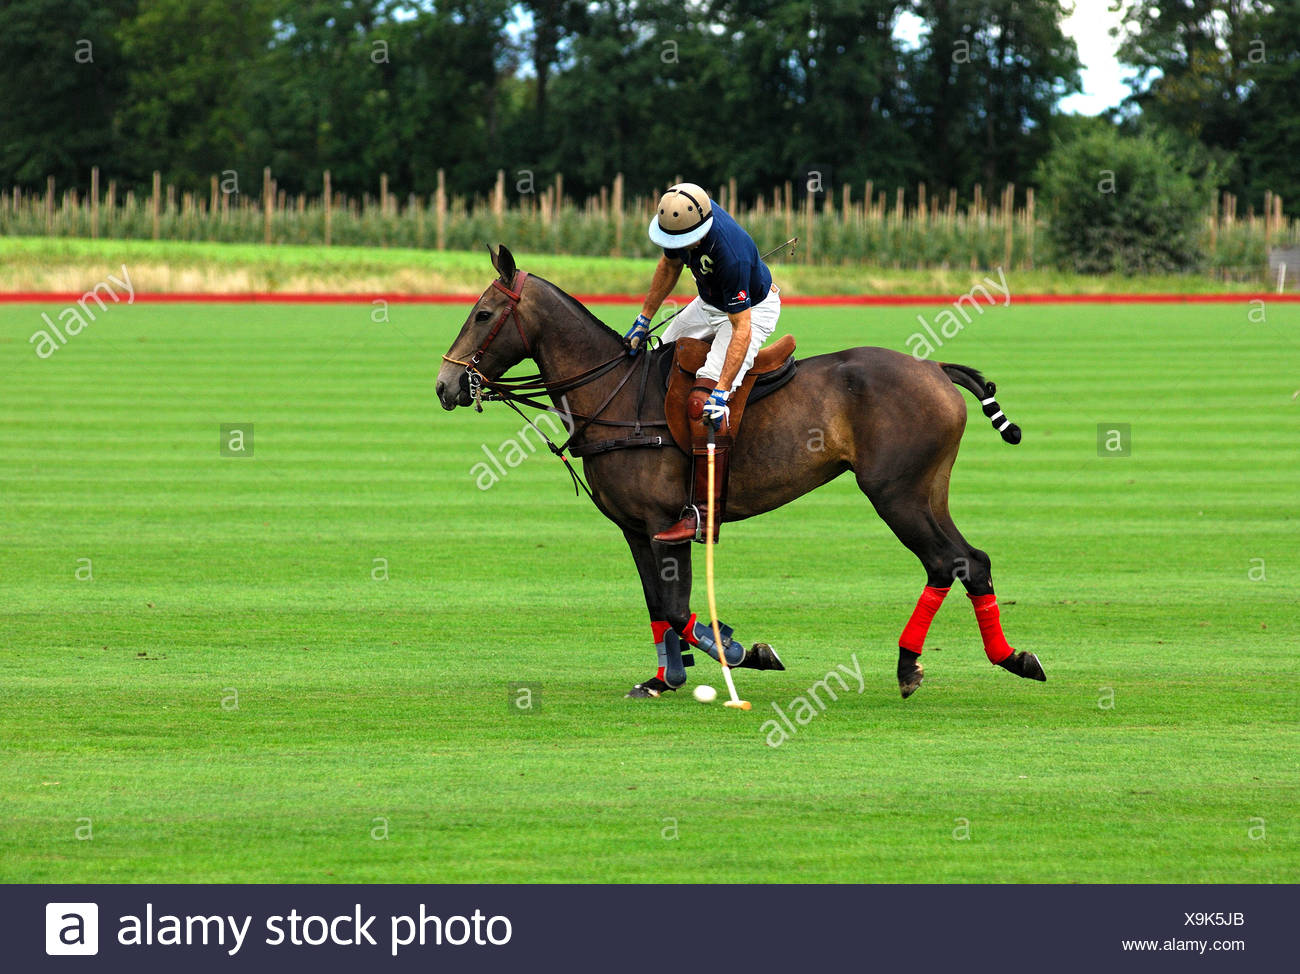 Polo player hitting the ball, polo, equestrian sport - Stock Image